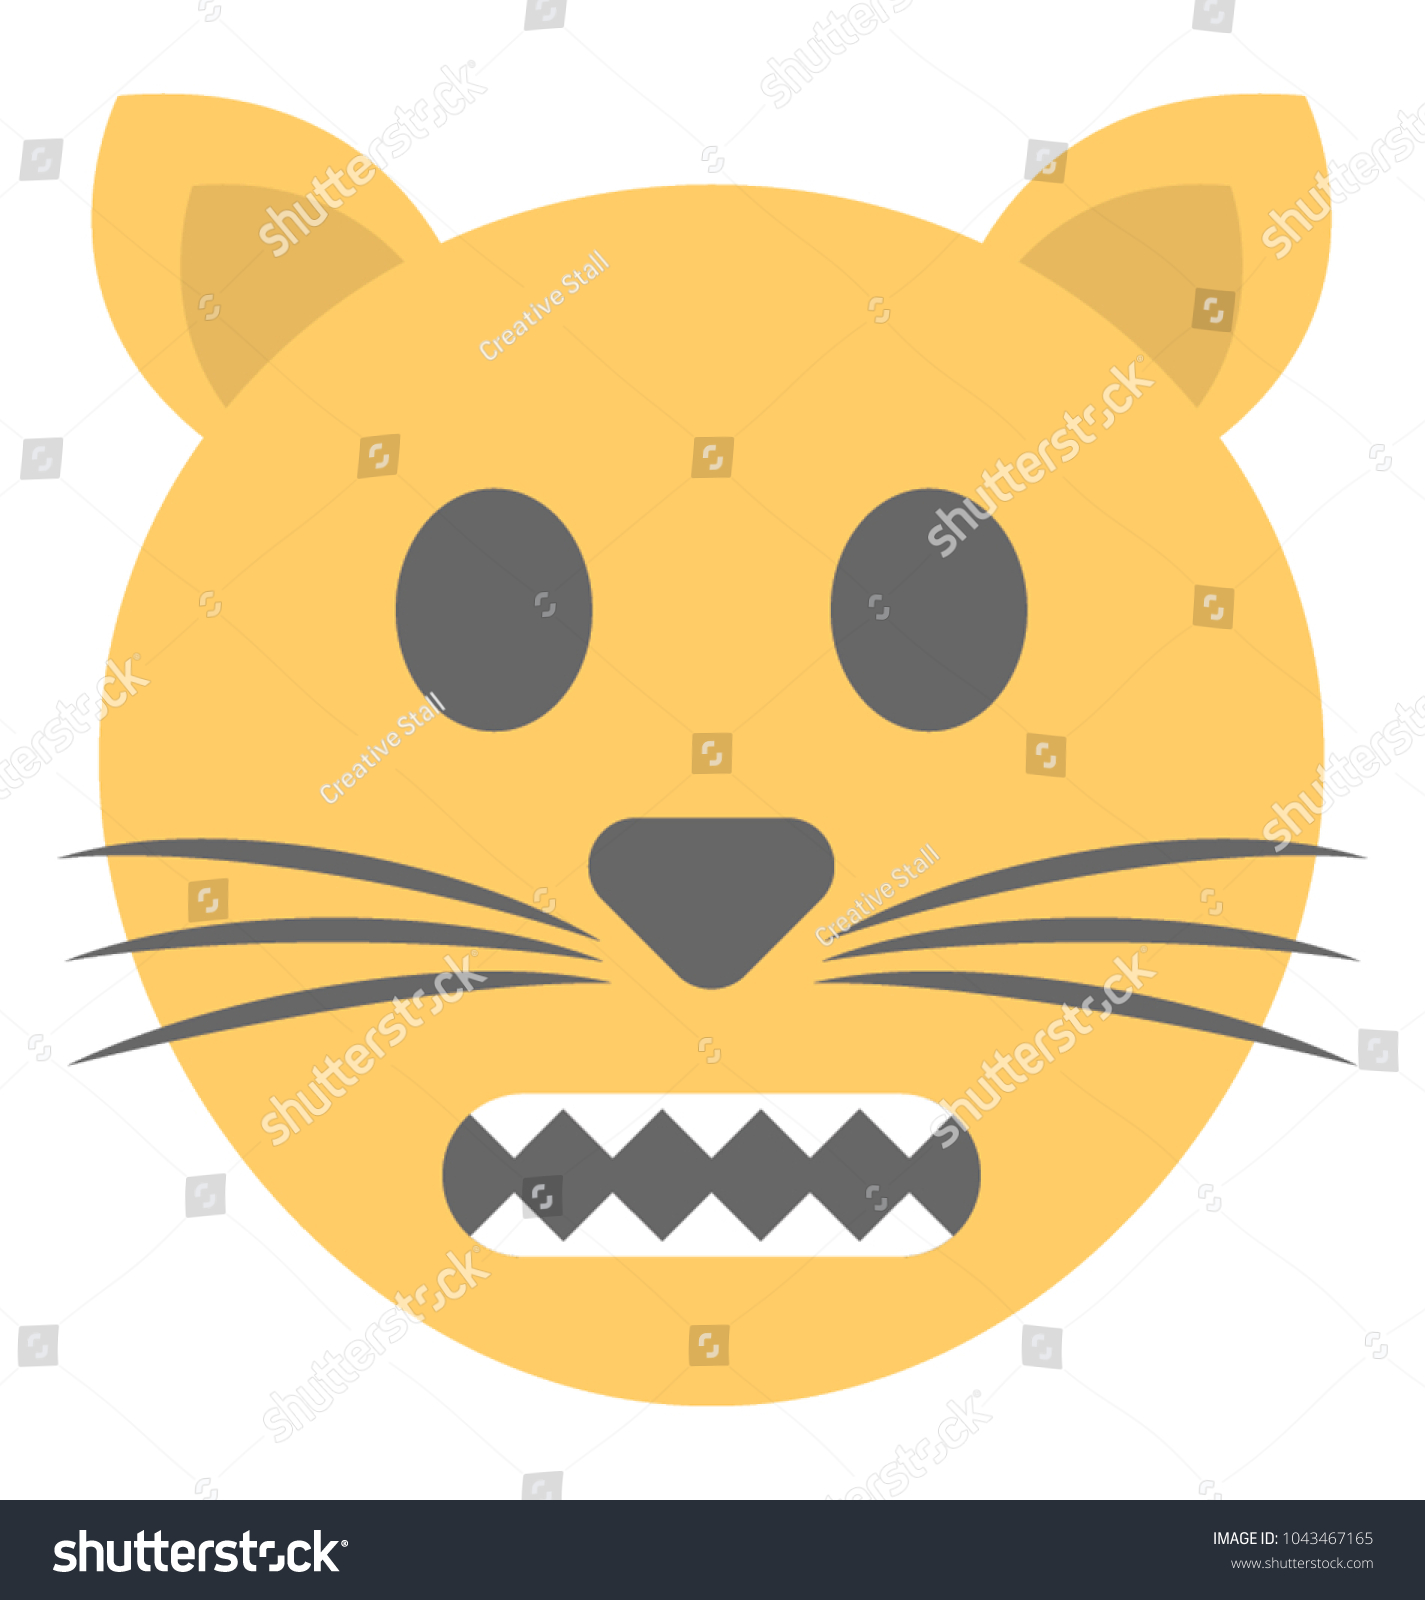 A Smiley With Whiskers Symbolising Cat Emoticon Ez Canvas